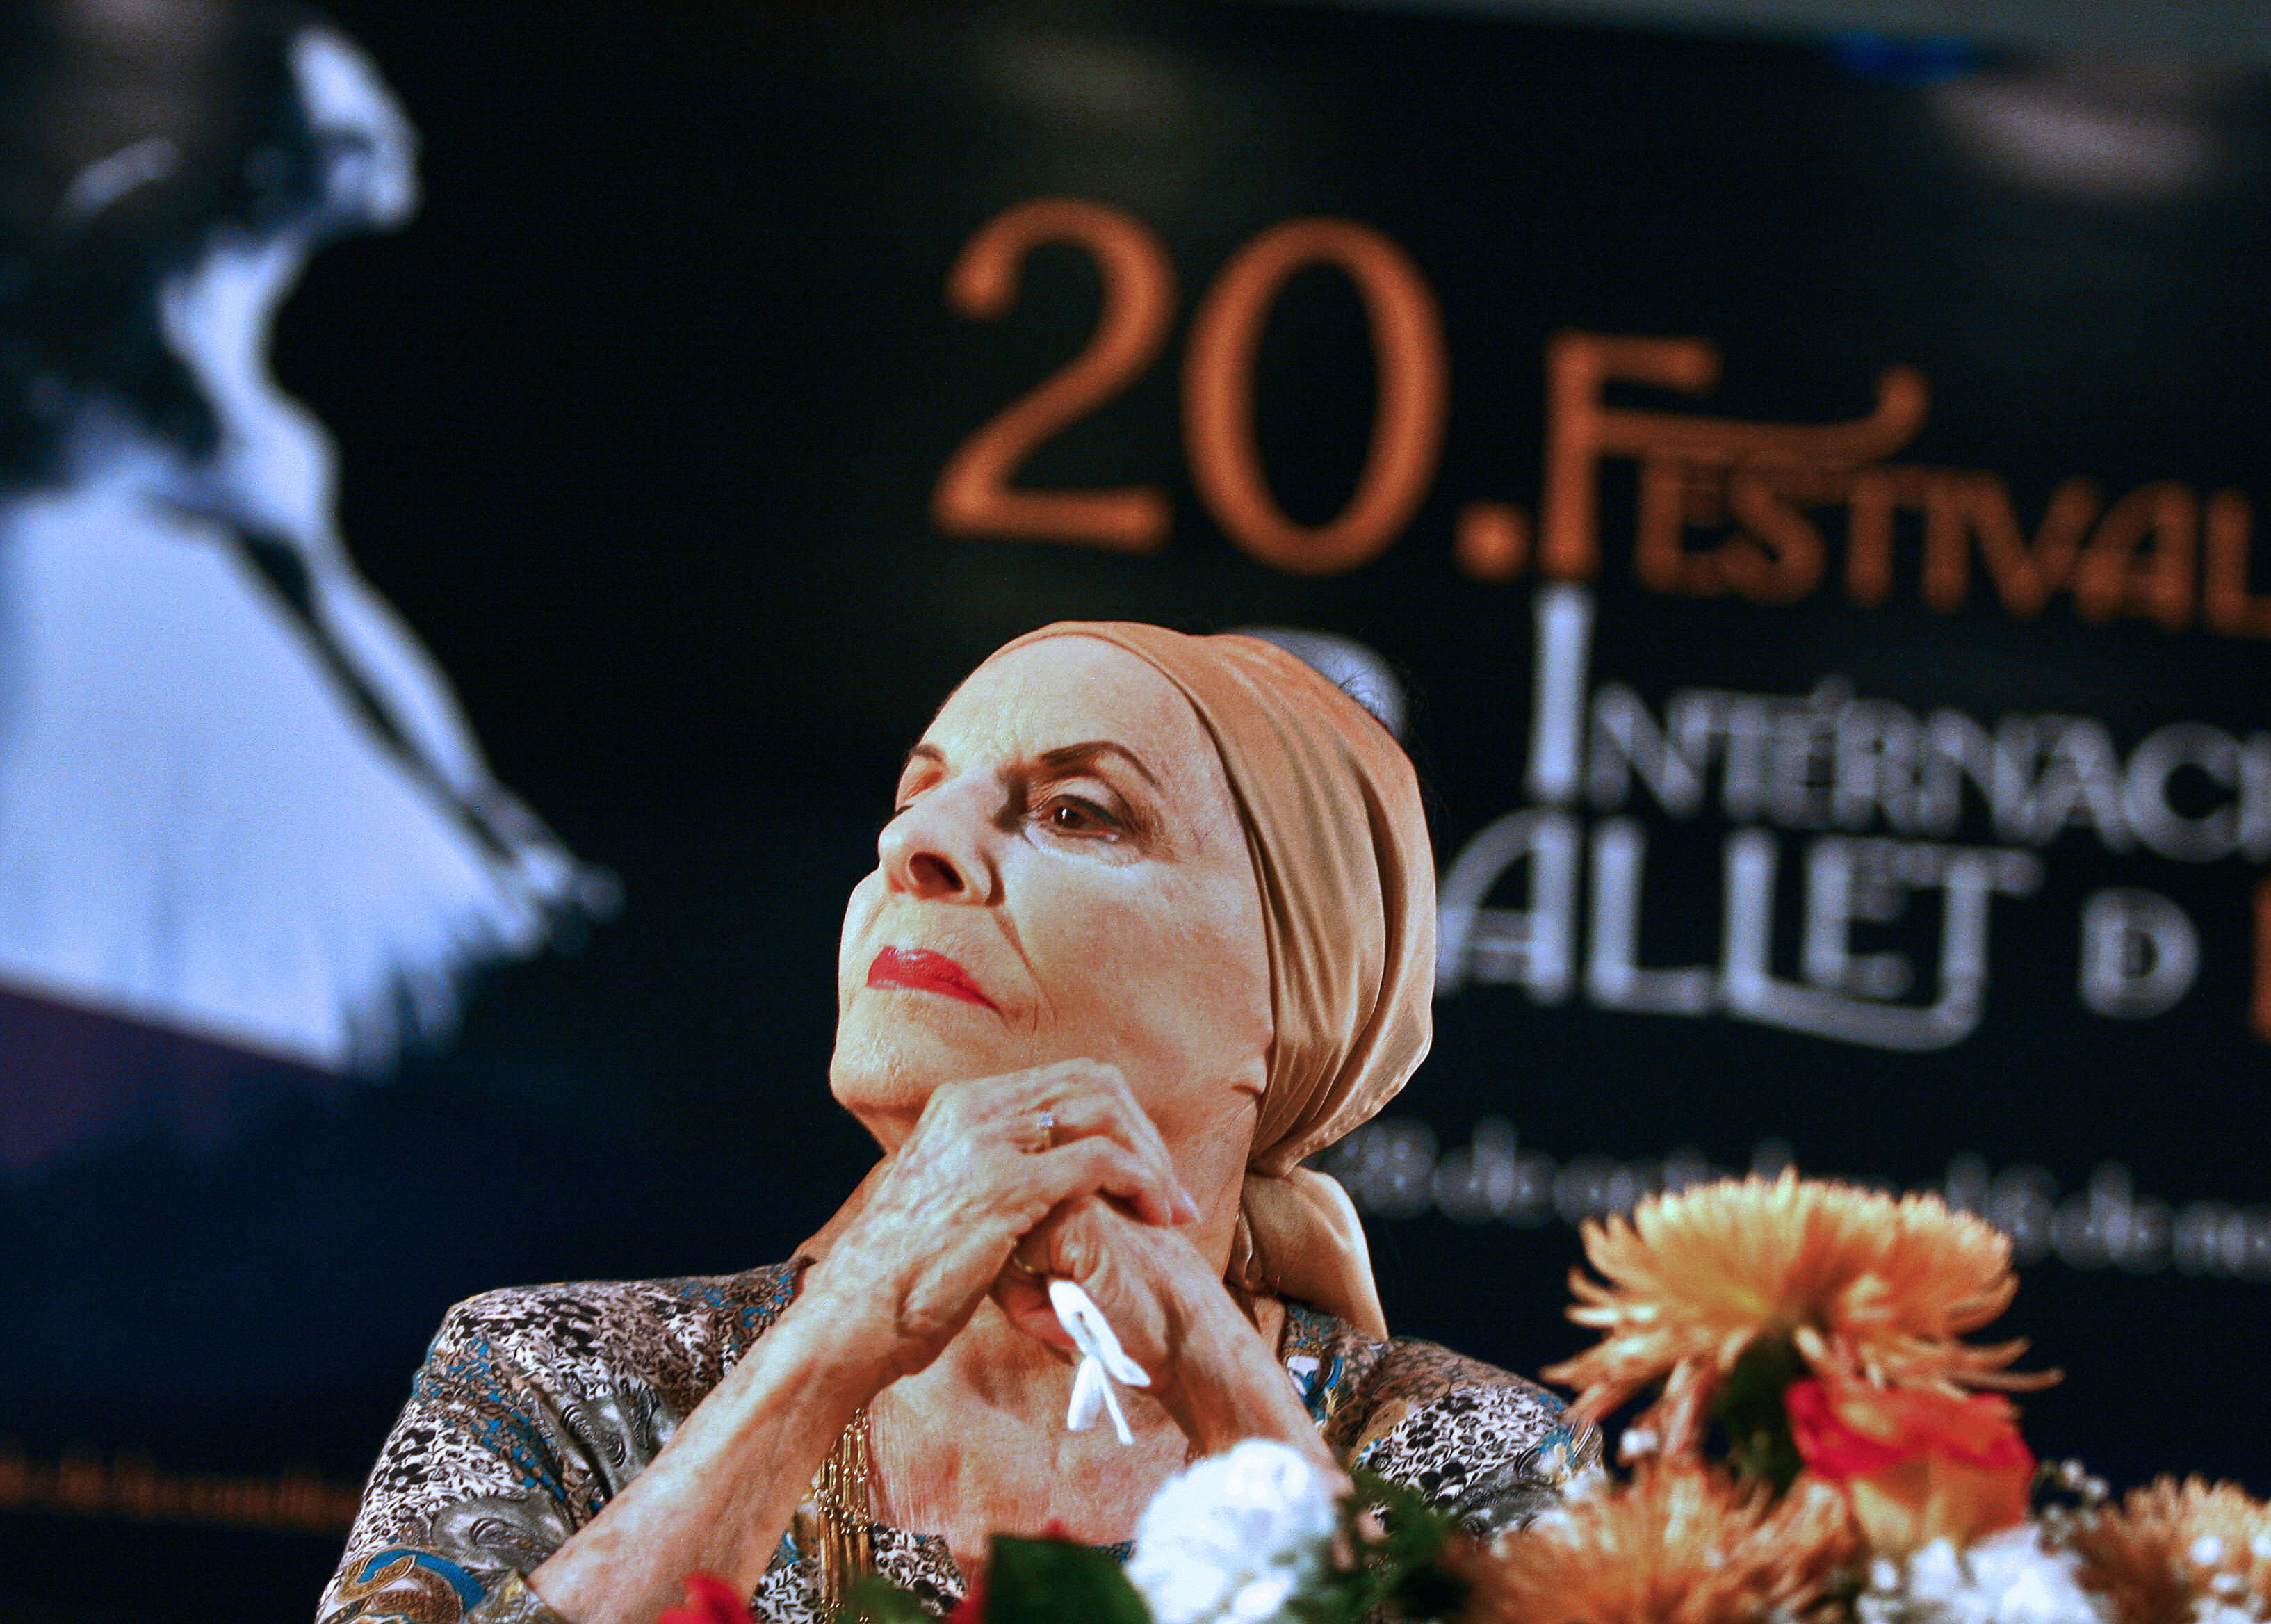 LA HABANA, CUBA:  Dancer Alicia Alonso, Director of the National Ballet of Cuba, answers questions during a press conference to announce the program of the XX Havana's Ballet Festival, that will be held from next 28 October to 6 November.  AFP PHOTO/Adalberto ROQUE  (Photo credit should read ADALBERTO ROQUE/AFP via Getty Images)